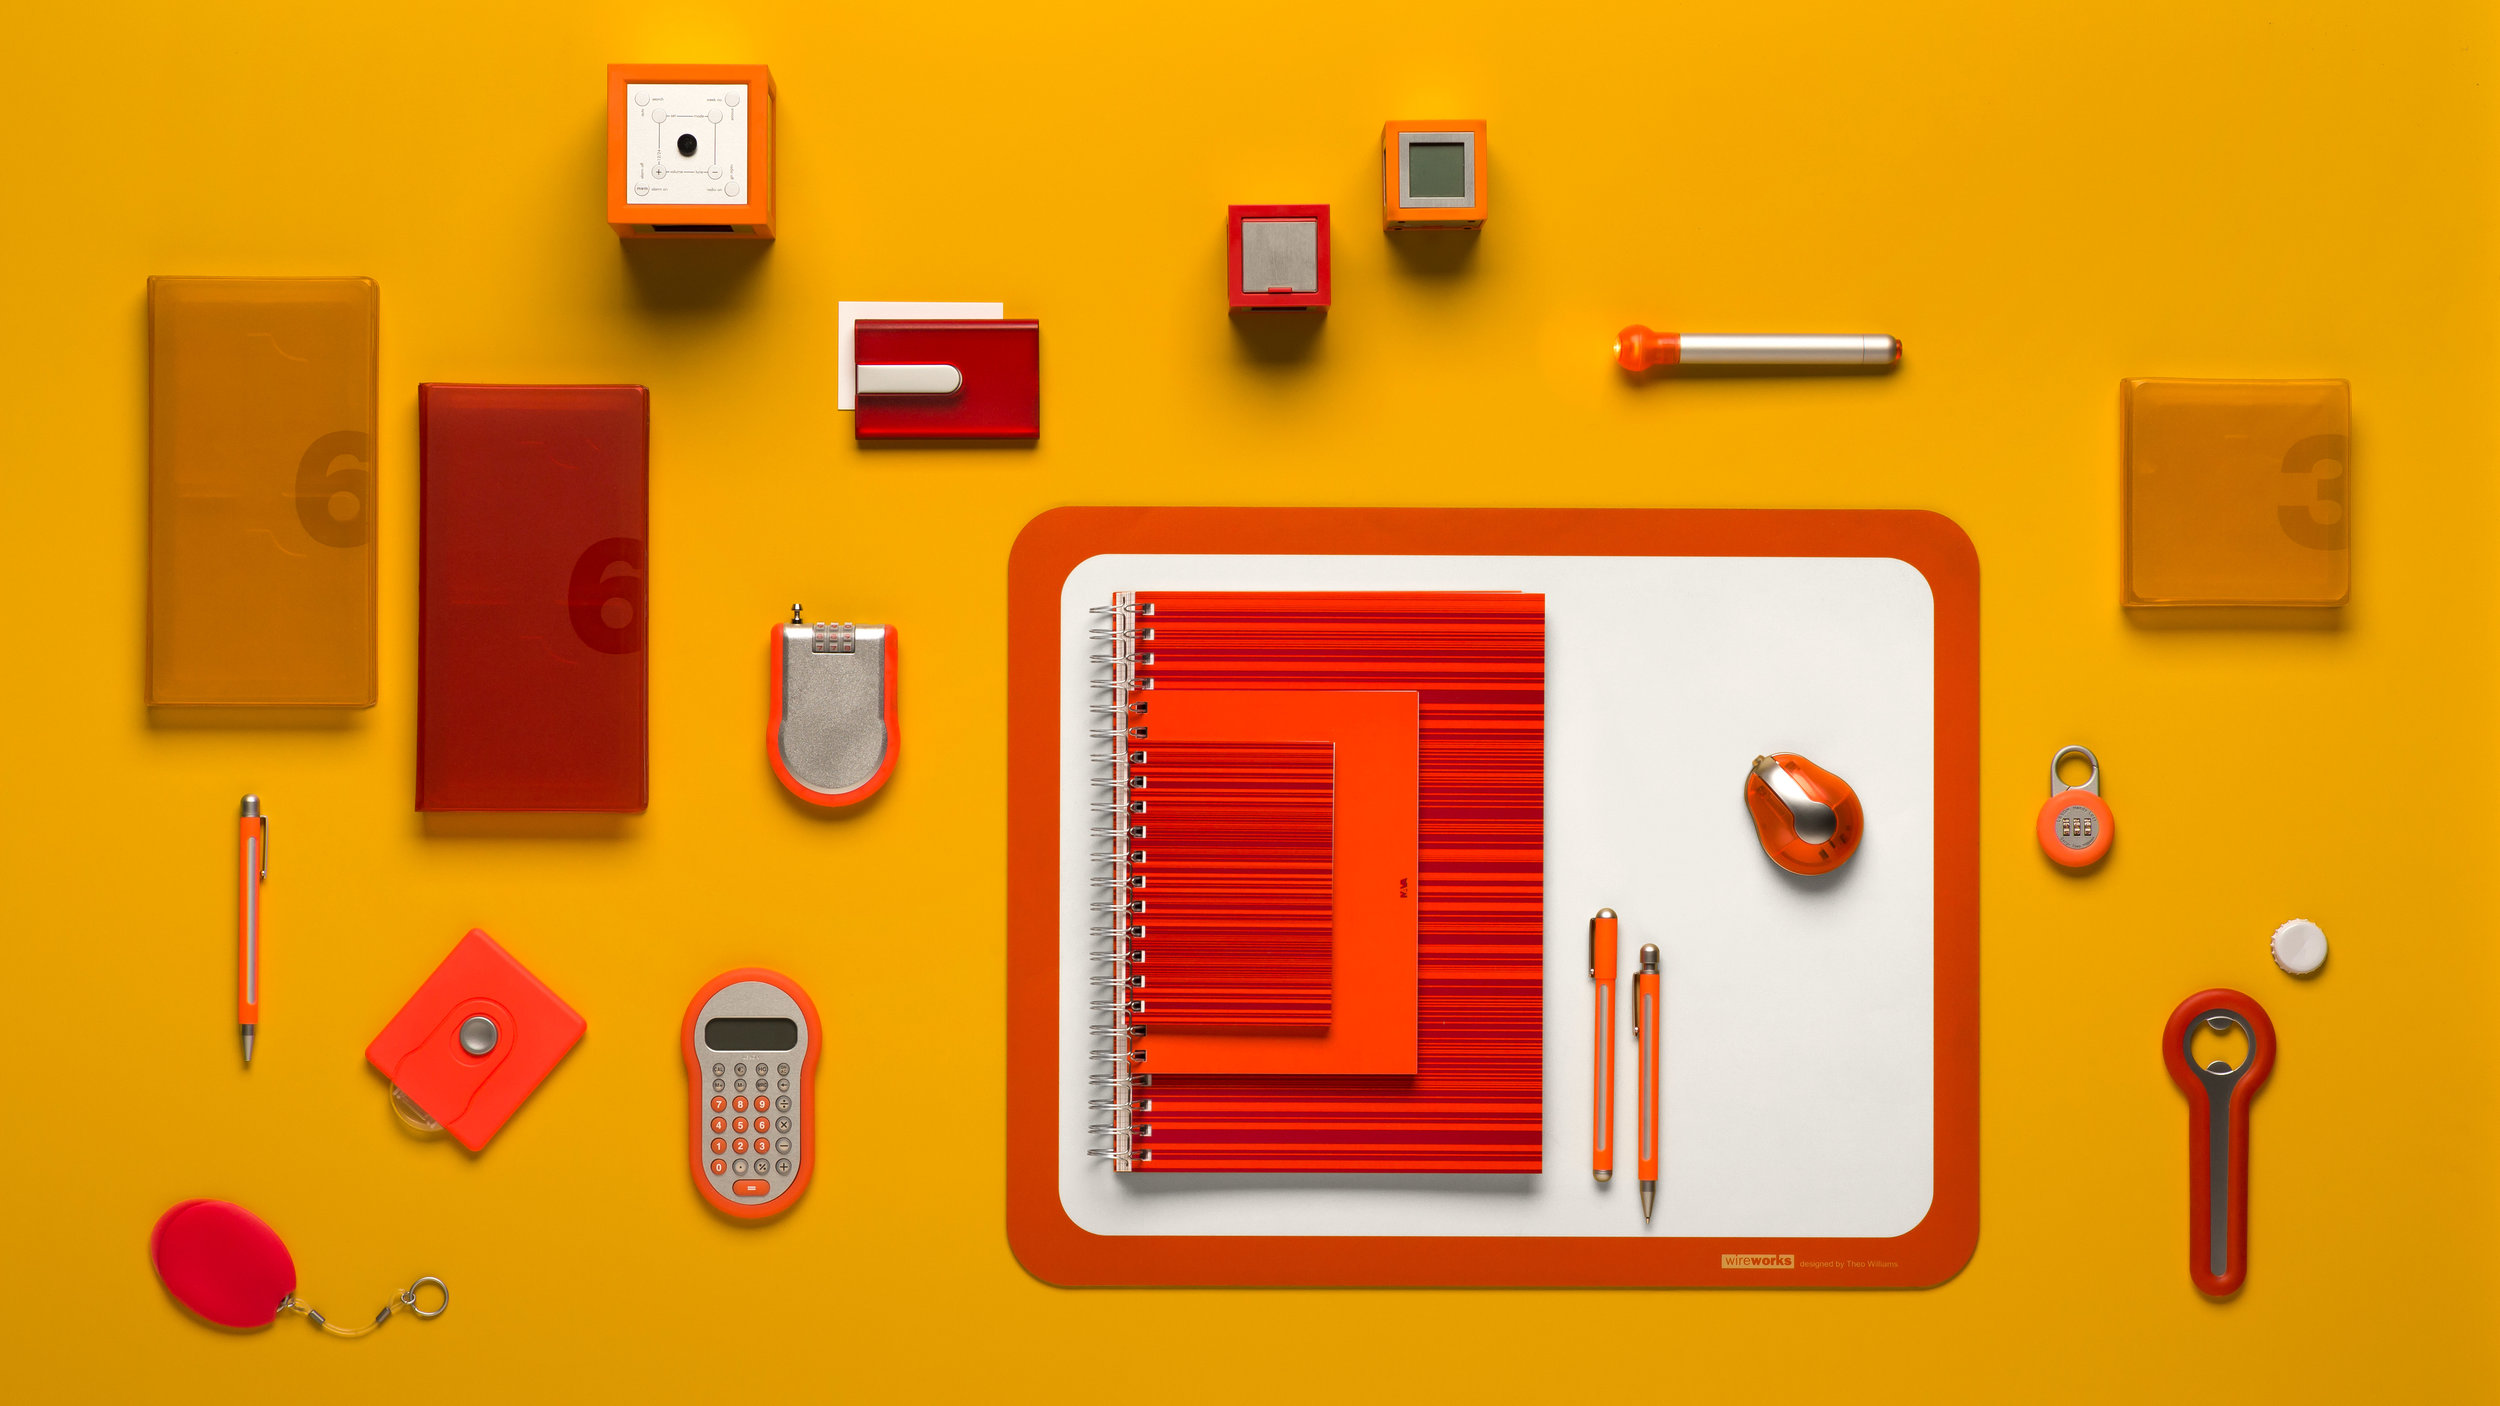 Theo-Williams-Product-Design-Stationary.jpg